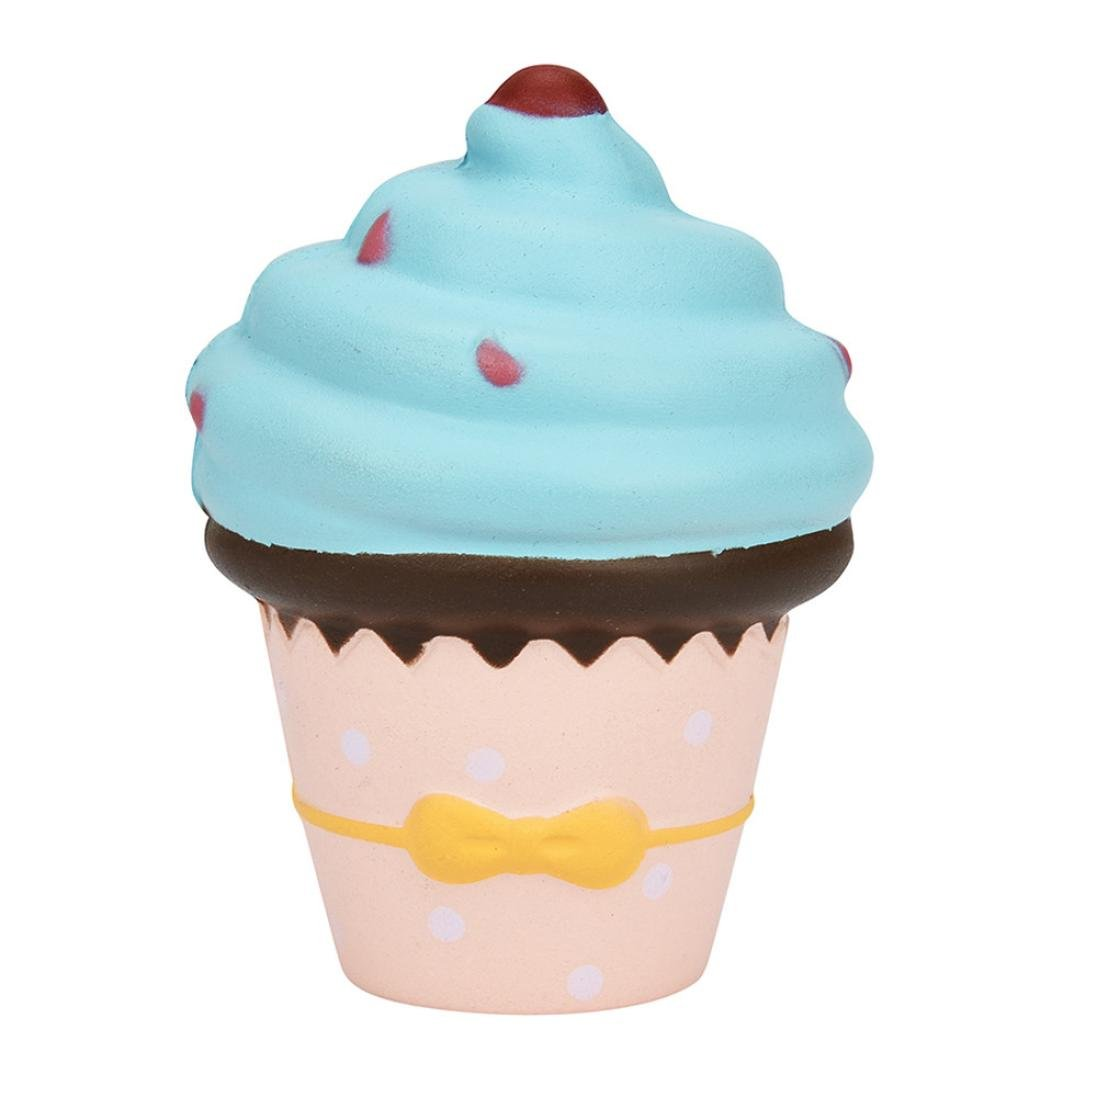 Squeeze Toy, Naladoo 1Pc Simulation Cup Cake Ice Cream Scented Squishy Charm Slow Rising Kids Decompression Toy IU32566436436